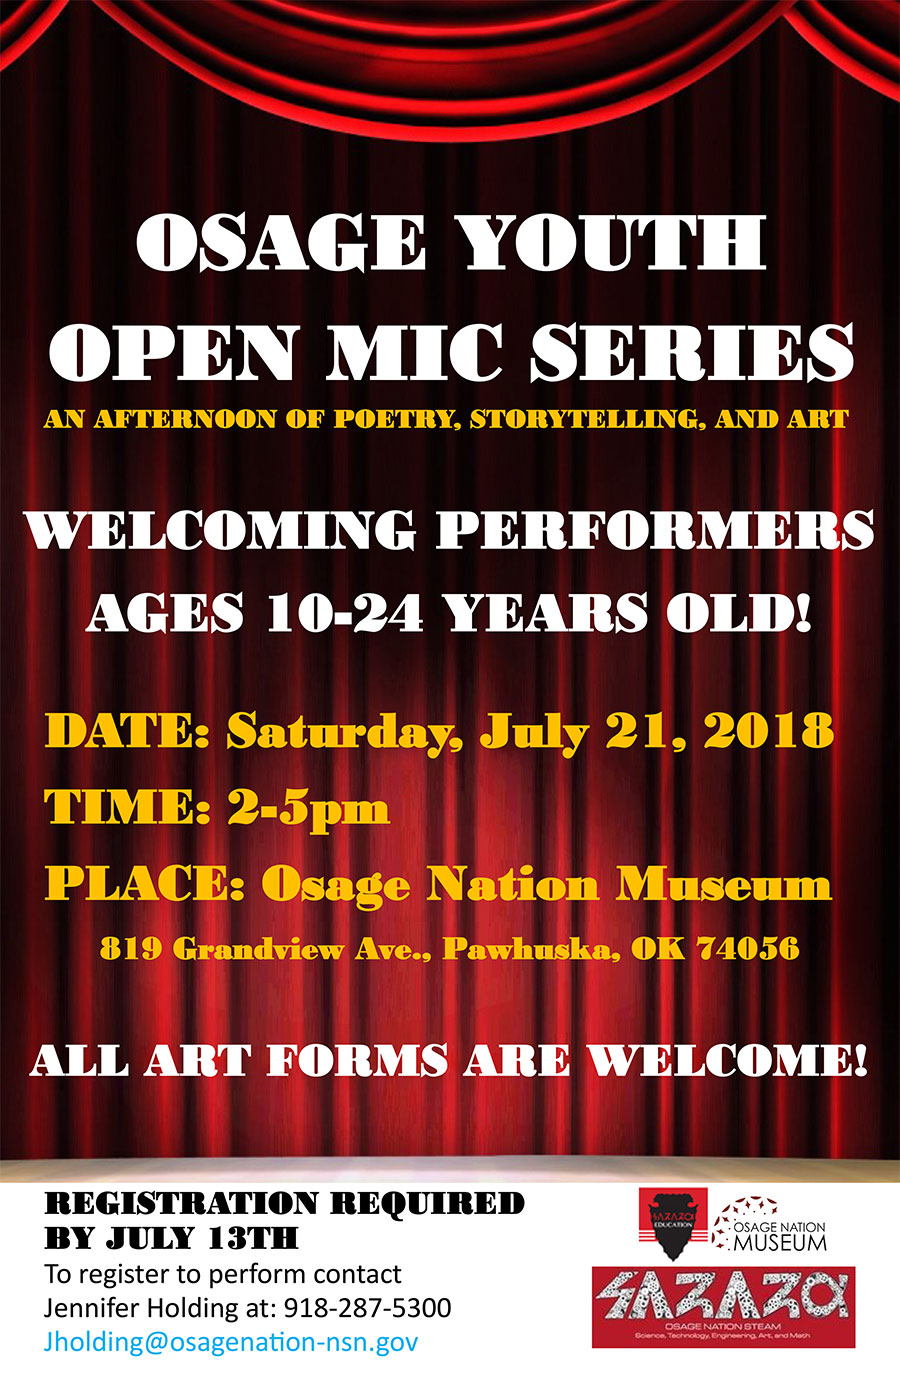 ON Museum hosting Osage Youth Open Mic Series